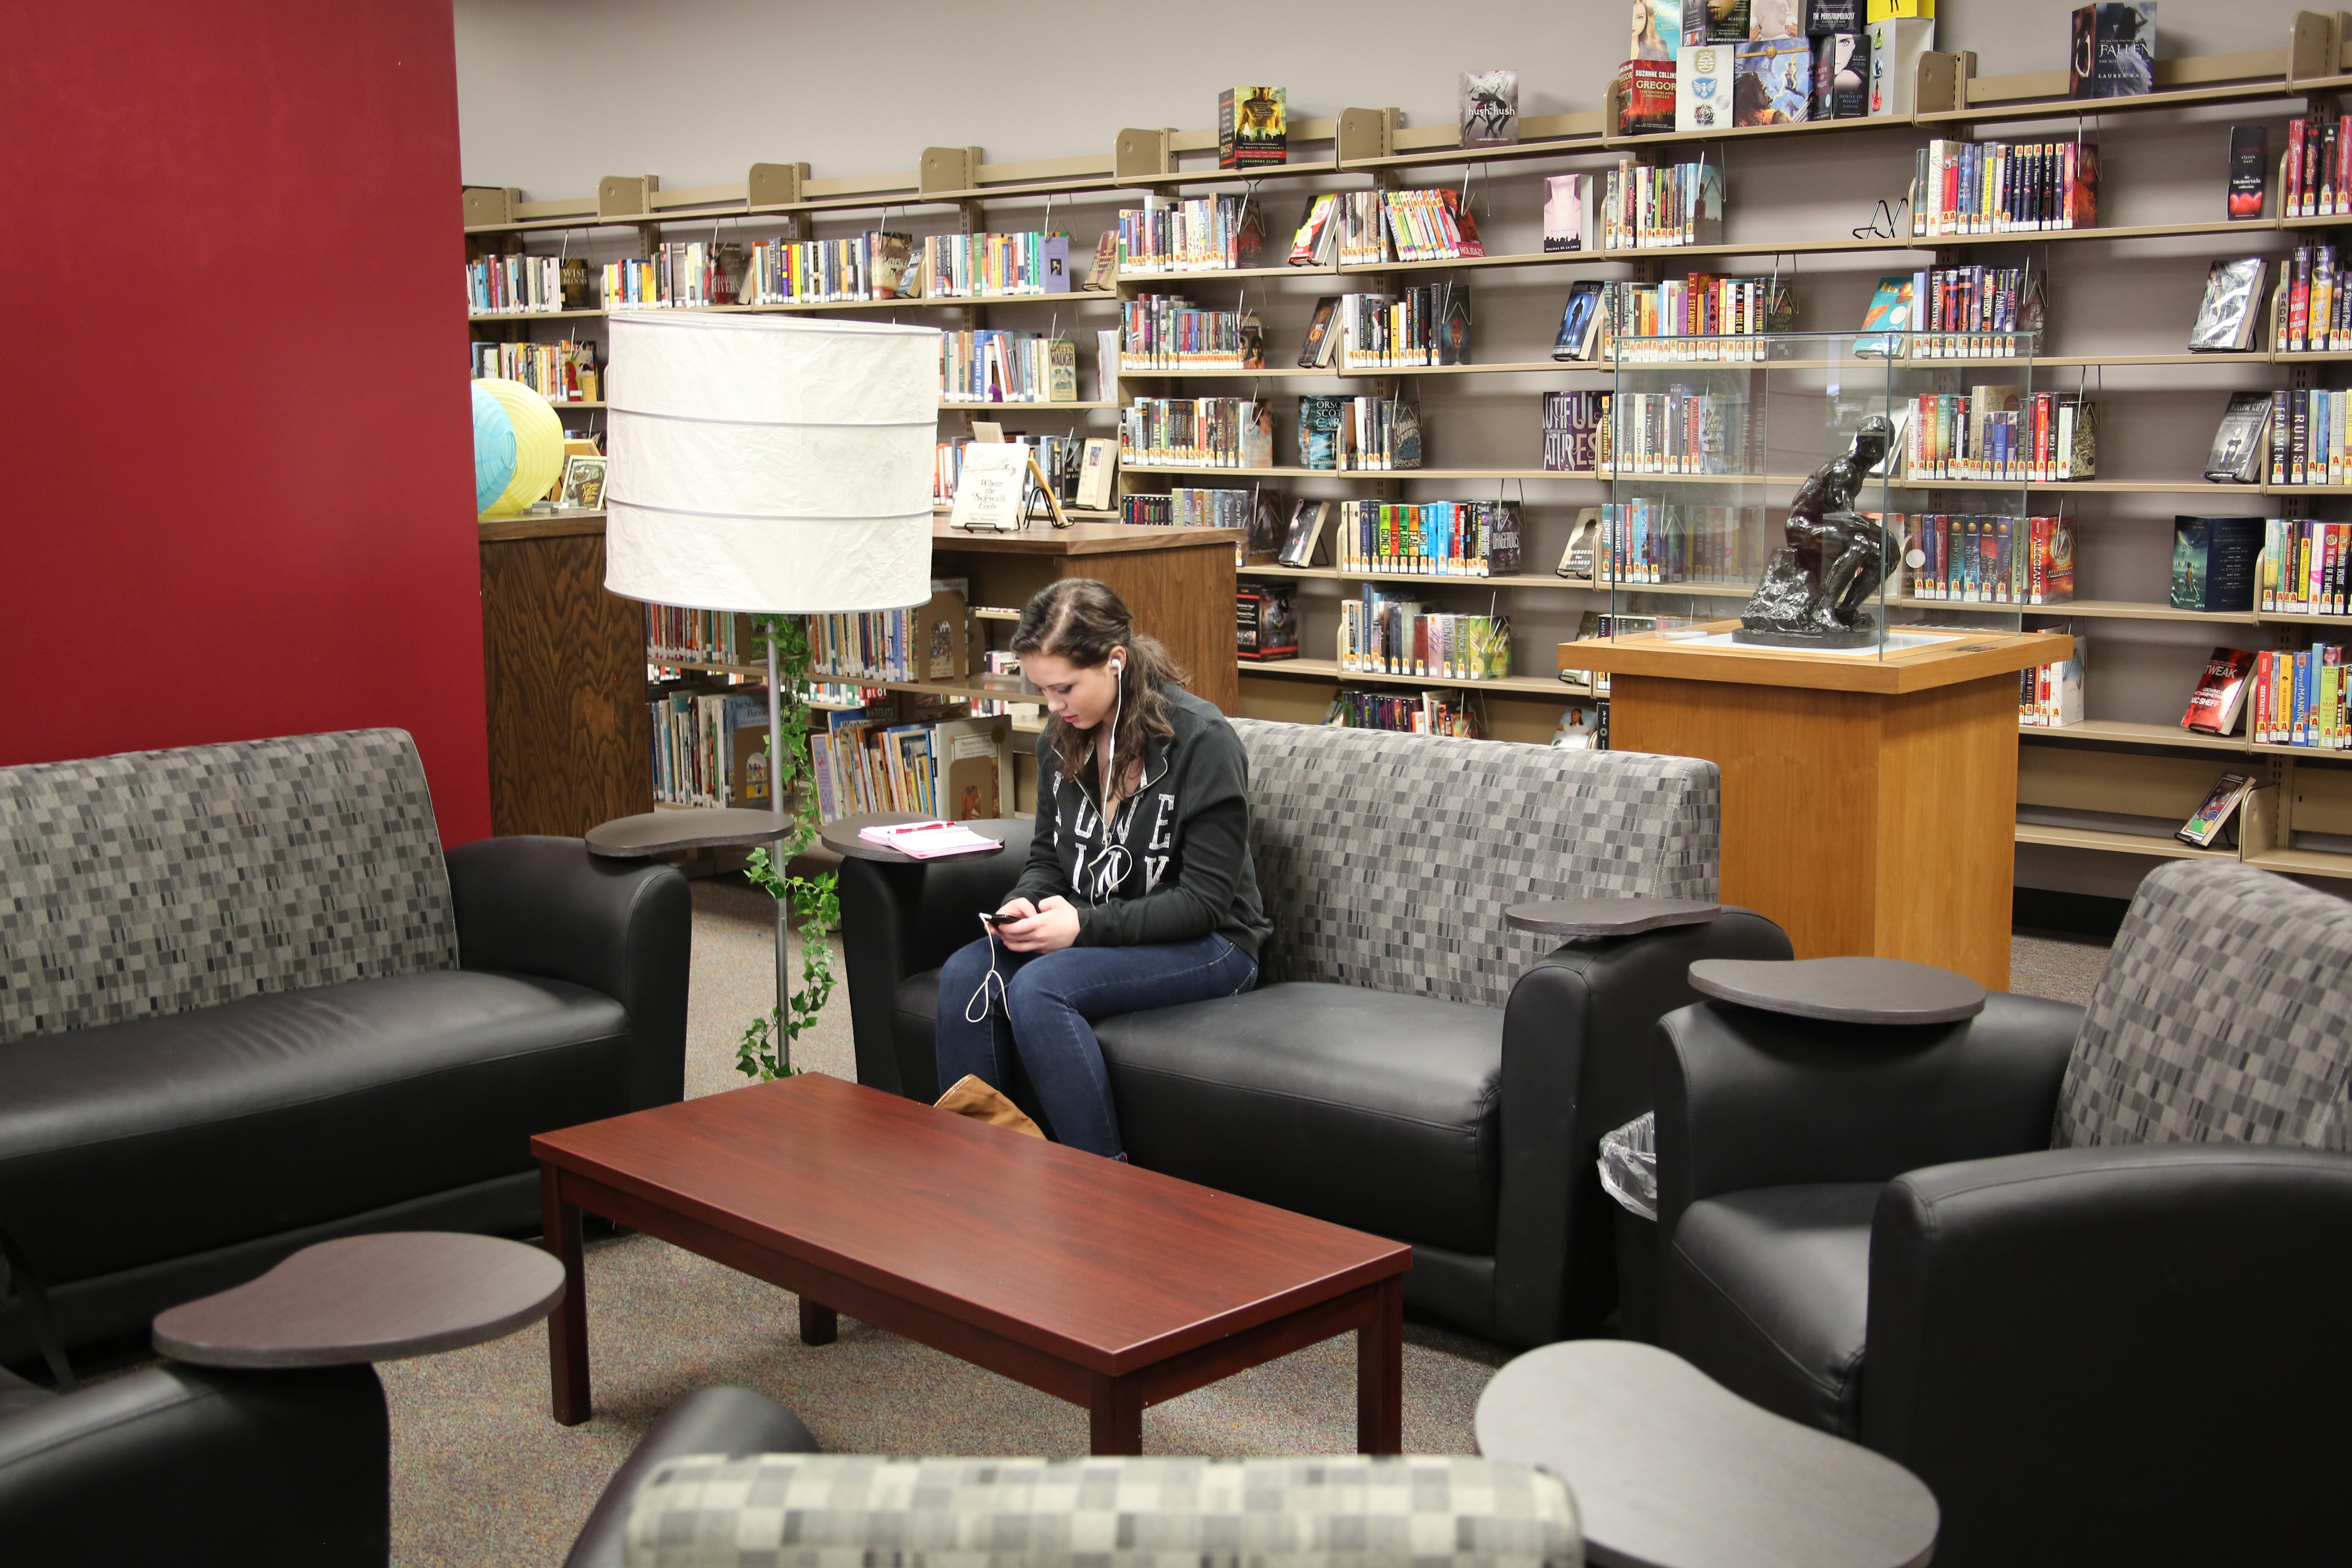 Student sitting on the couch in the library